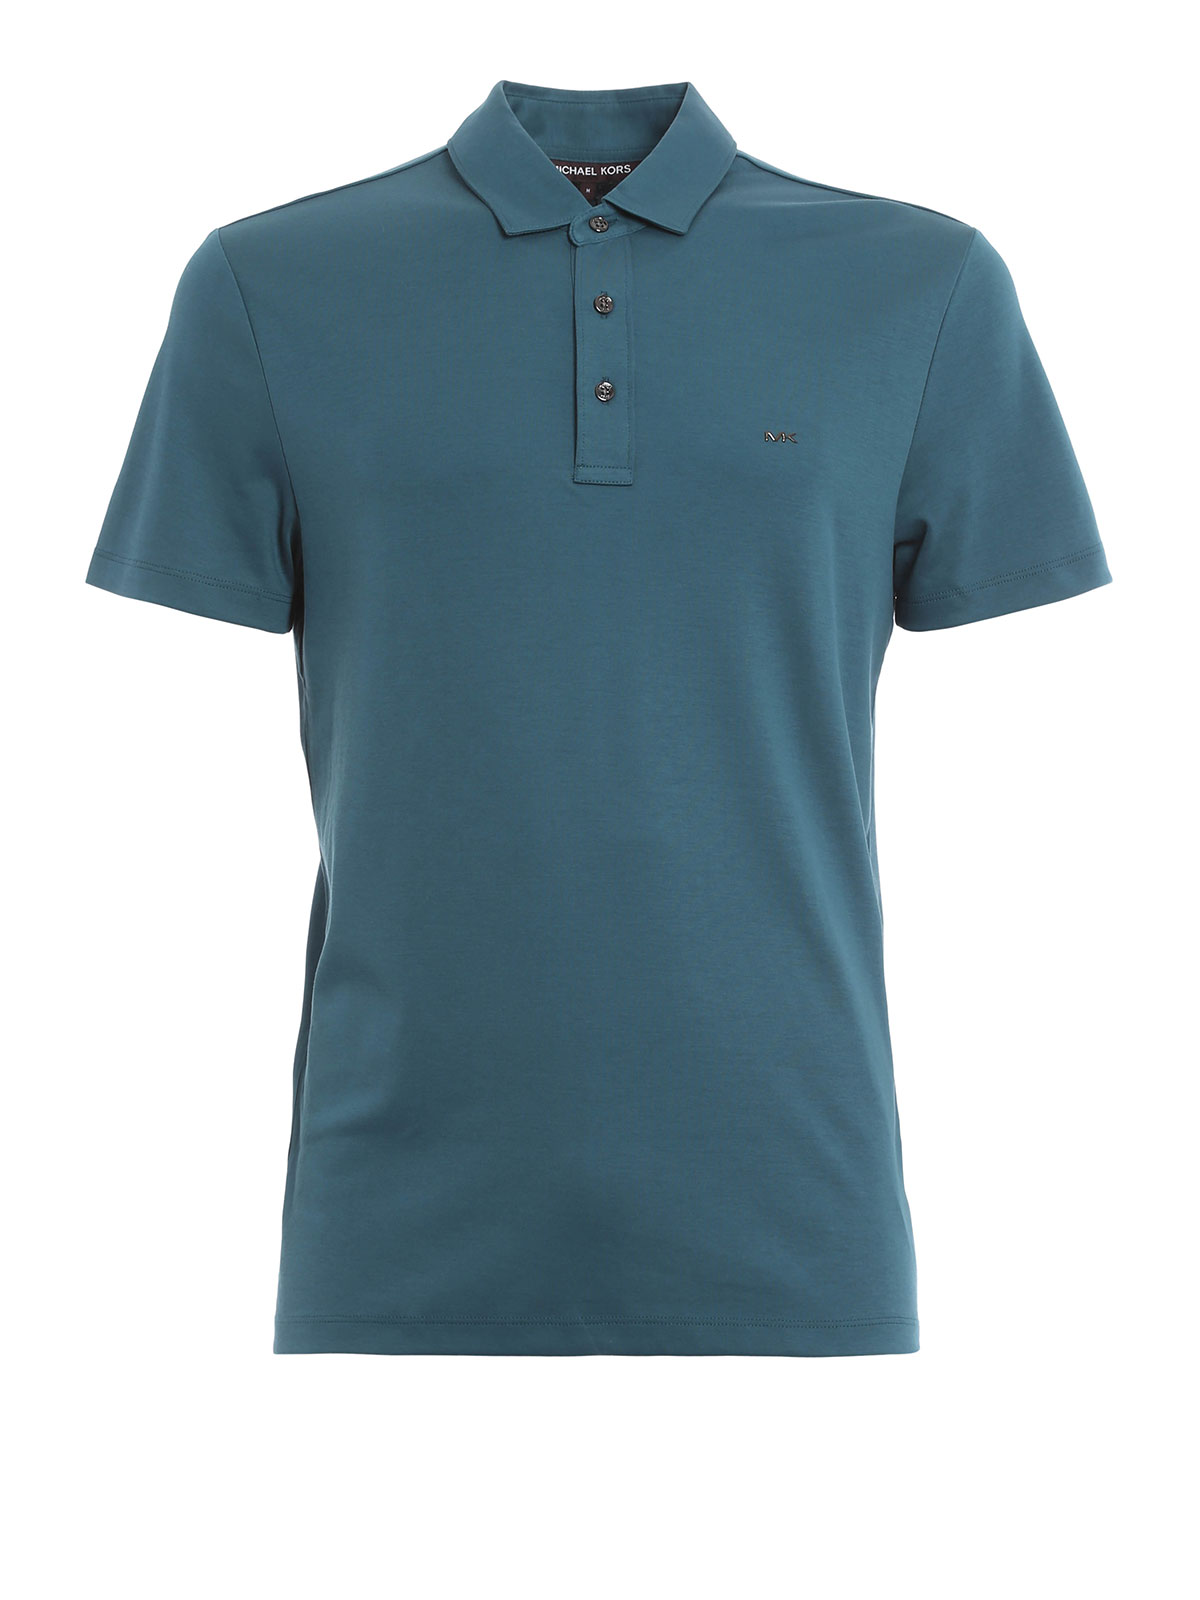 Combine the comfortable feel of cotton with well-fitting polo shirts, add some custom embroidery to the mix, and you've got the perfect women's polo. Combine the comfortable feel of cotton with well-fitting polo shirts, add some custom embroidery to the mix, and you've got the perfect women's polo.